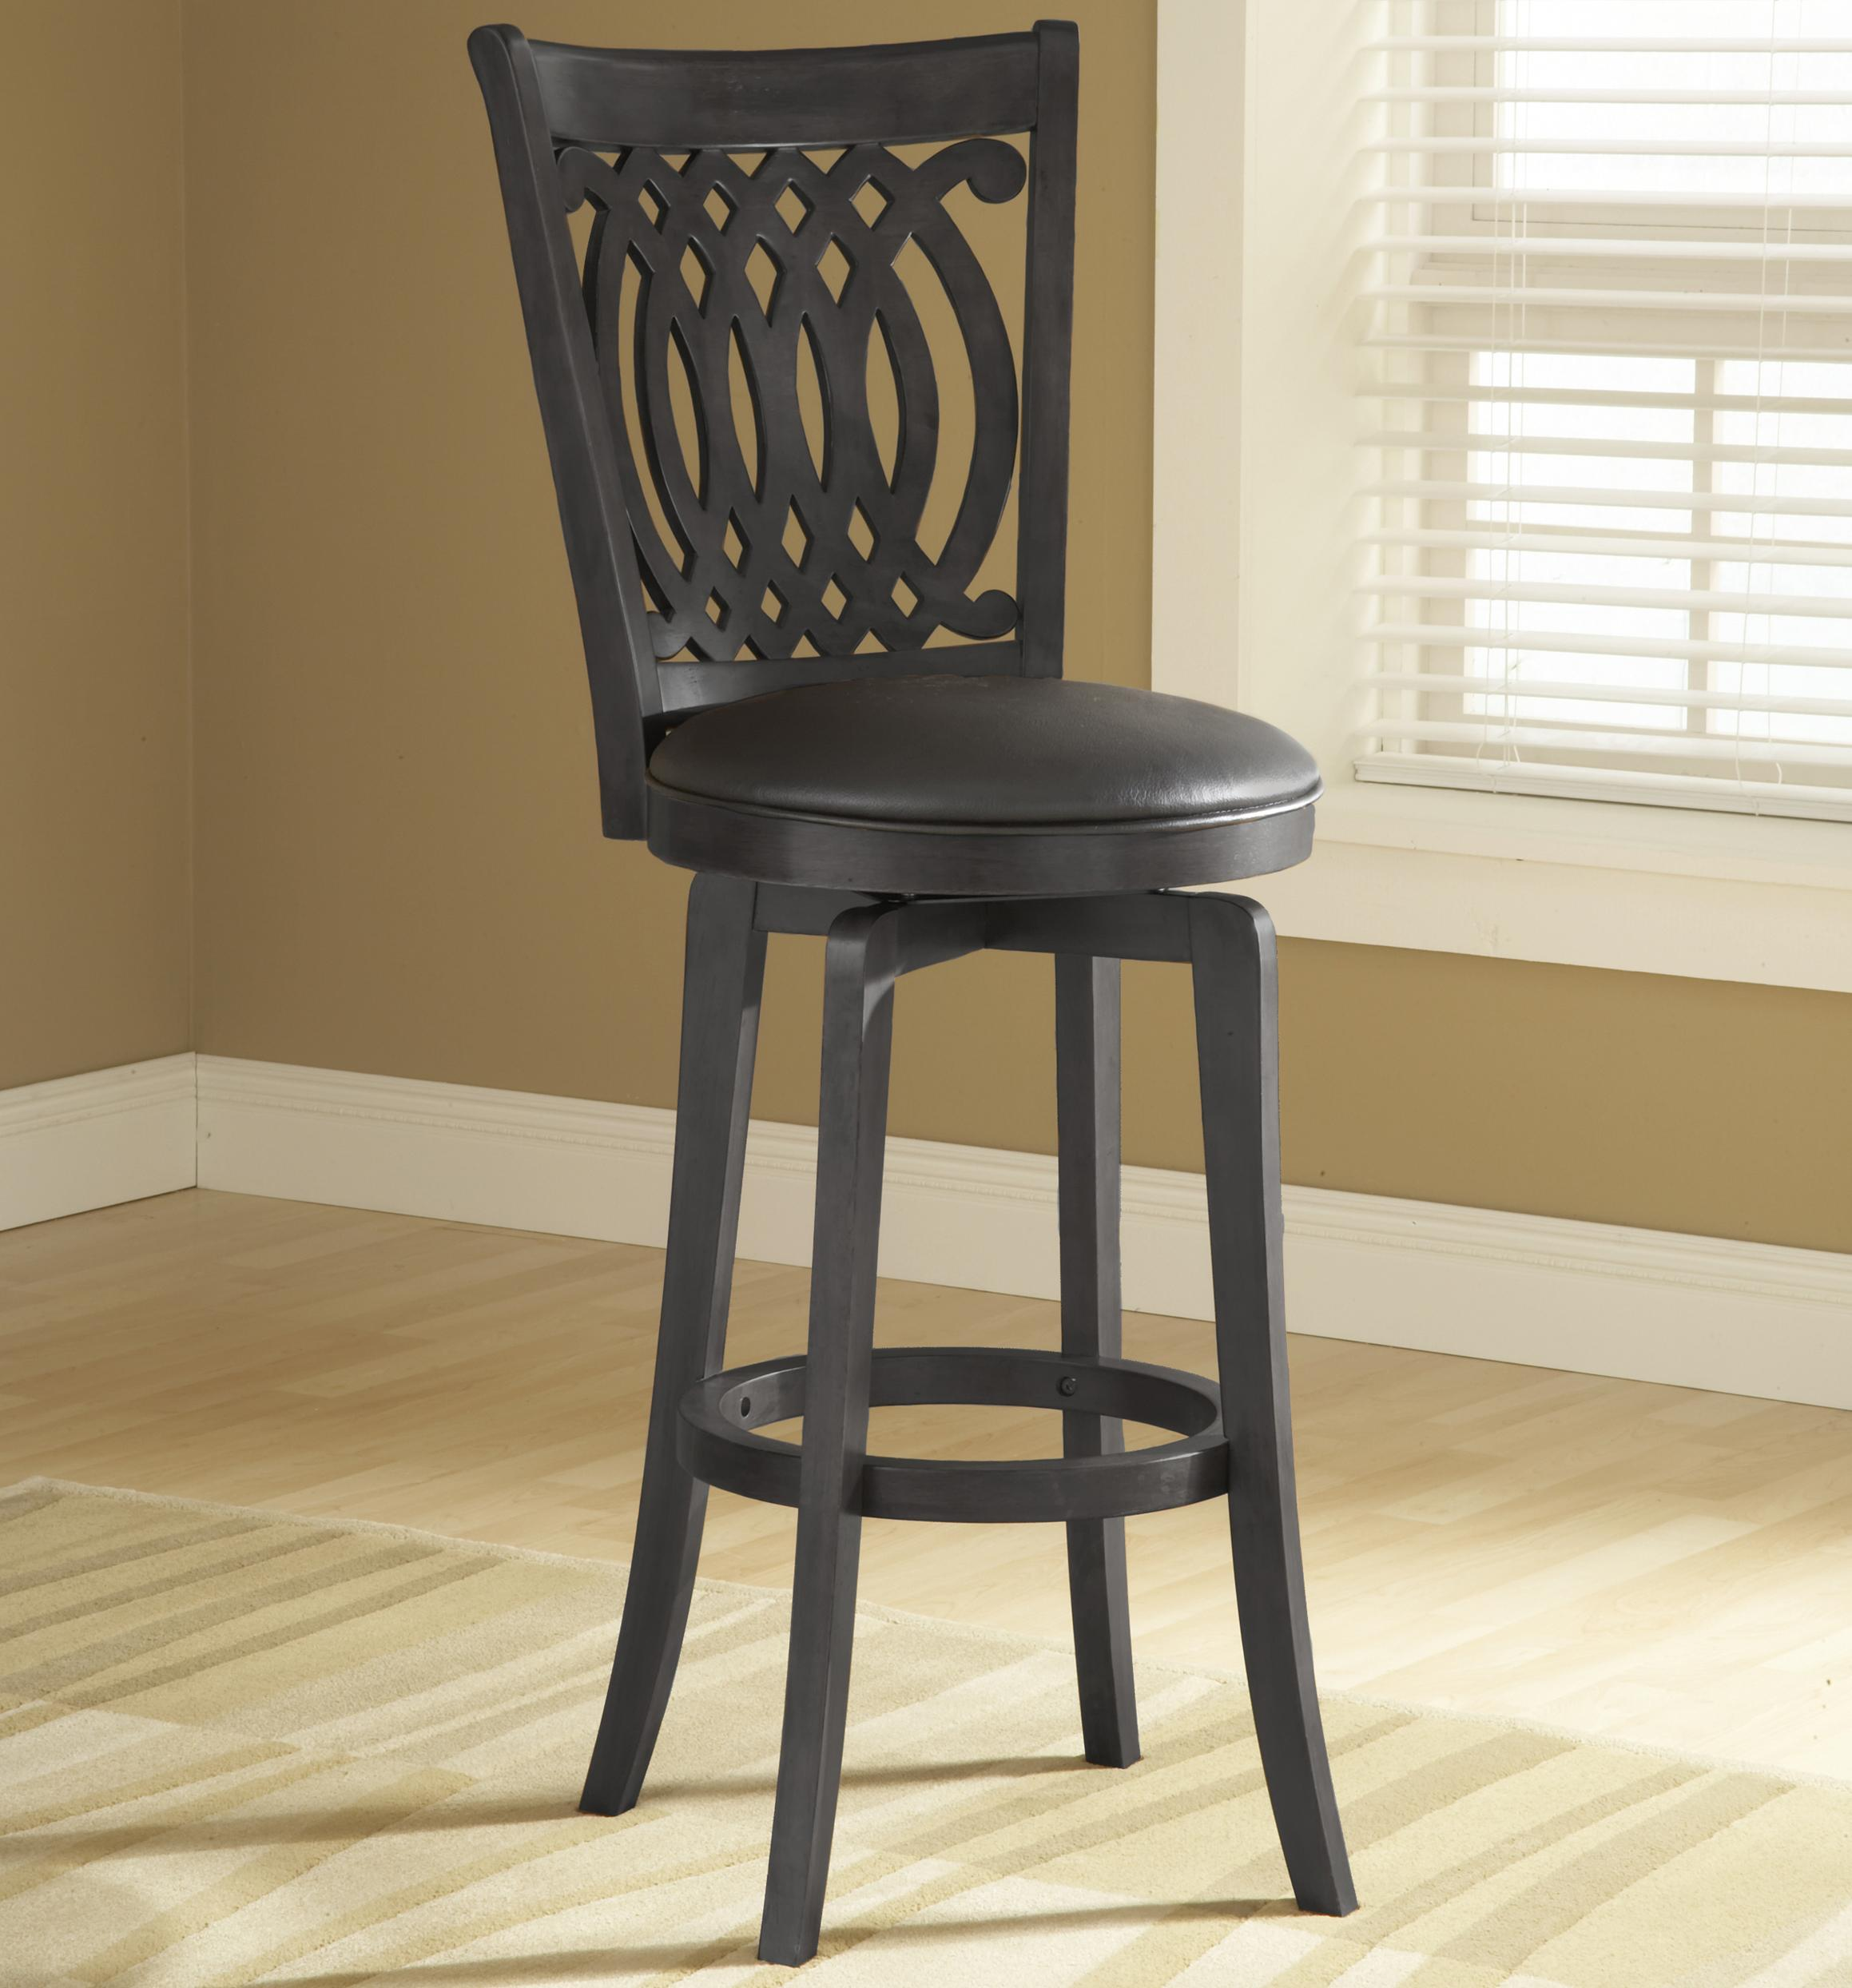 "Wood Stools 24"" Counter Height Van Draus Swivel Stool by Hillsdale at SuperStore"